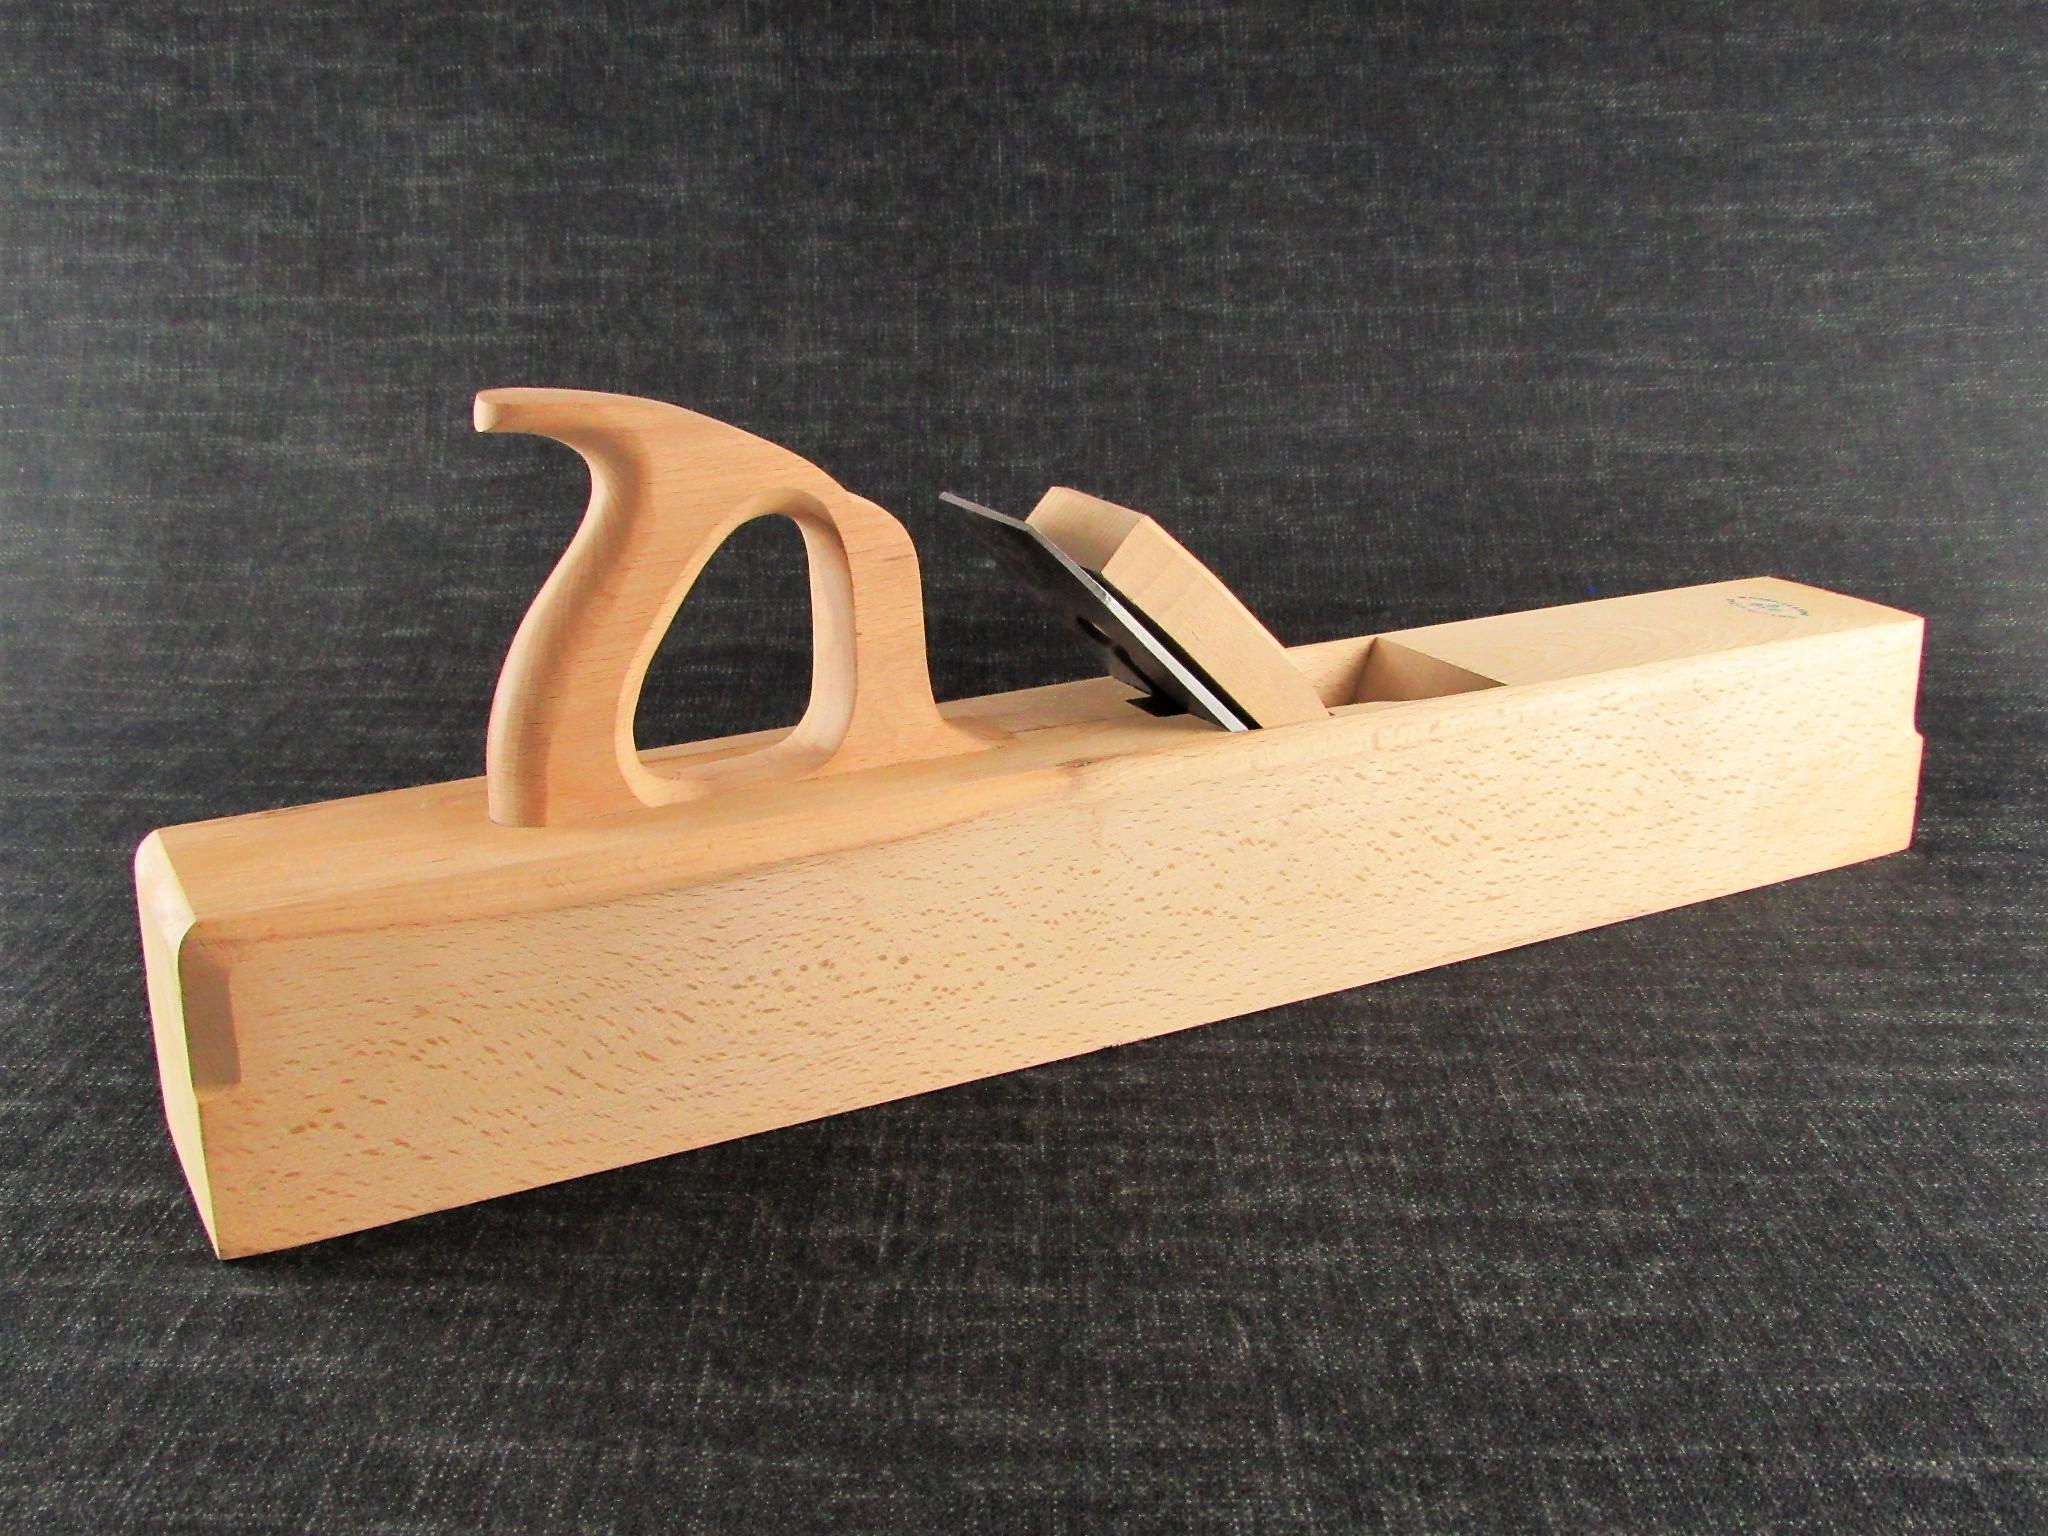 Excellent No.2794 MARPLES Wooden Try Plane - 22 inch